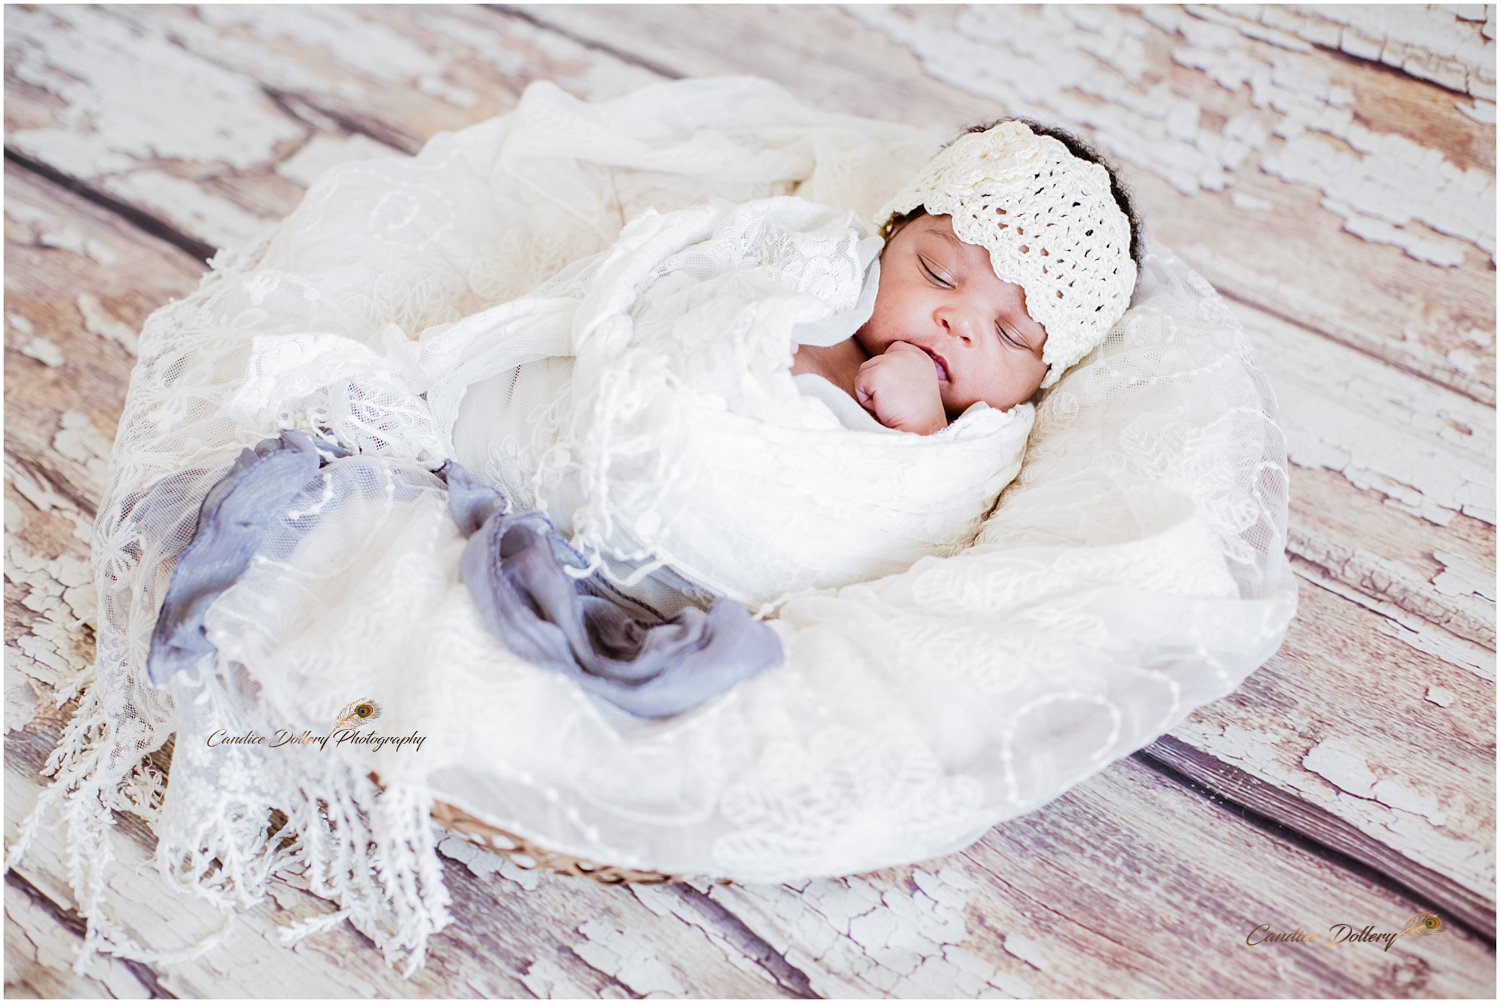 Newborn - Candice Dollery Photography_001